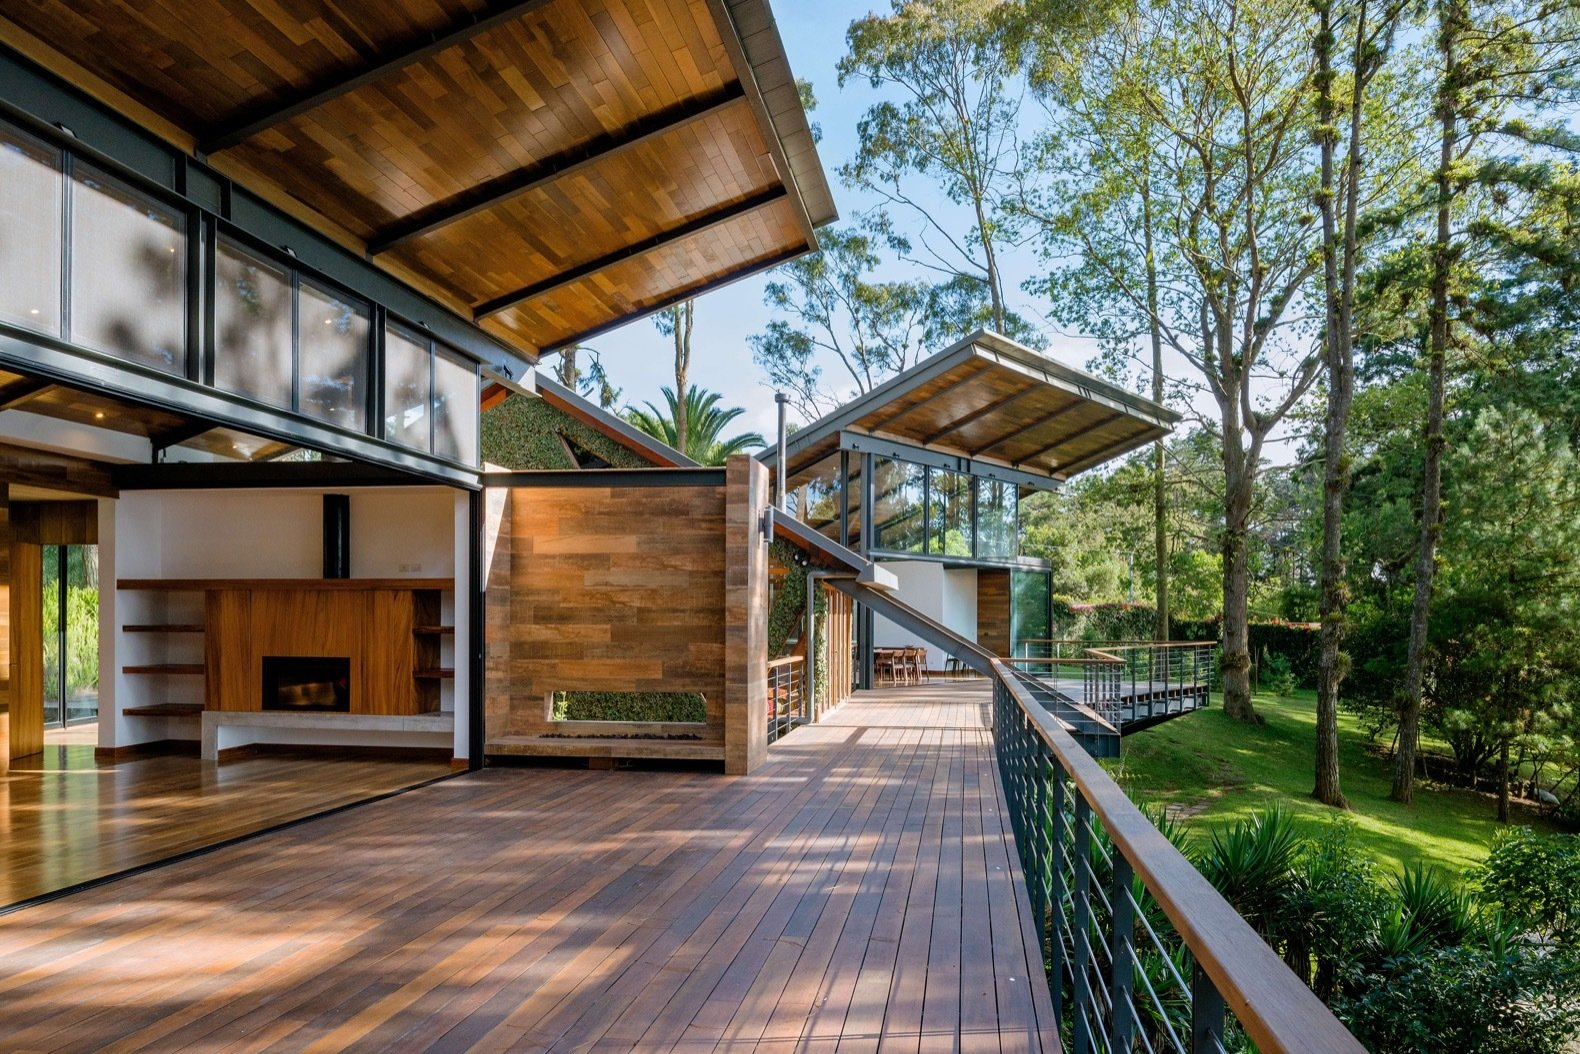 """Outdoor, Wood Patio, Porch, Deck, Large Patio, Porch, Deck, Back Yard, Trees, and Grass """"The retreat has an exterior platform larger than the interior in order to encourage the inhabitants to carry on outdoor activities,"""" says Alejandro. """"The exterior platforms are connected so it is possible to walk around in a cyclic and spontaneous pattern.""""  Photo 10 of 15 in A Small Guatemalan Hut Gains a Thoughtful Glazed Expansion"""